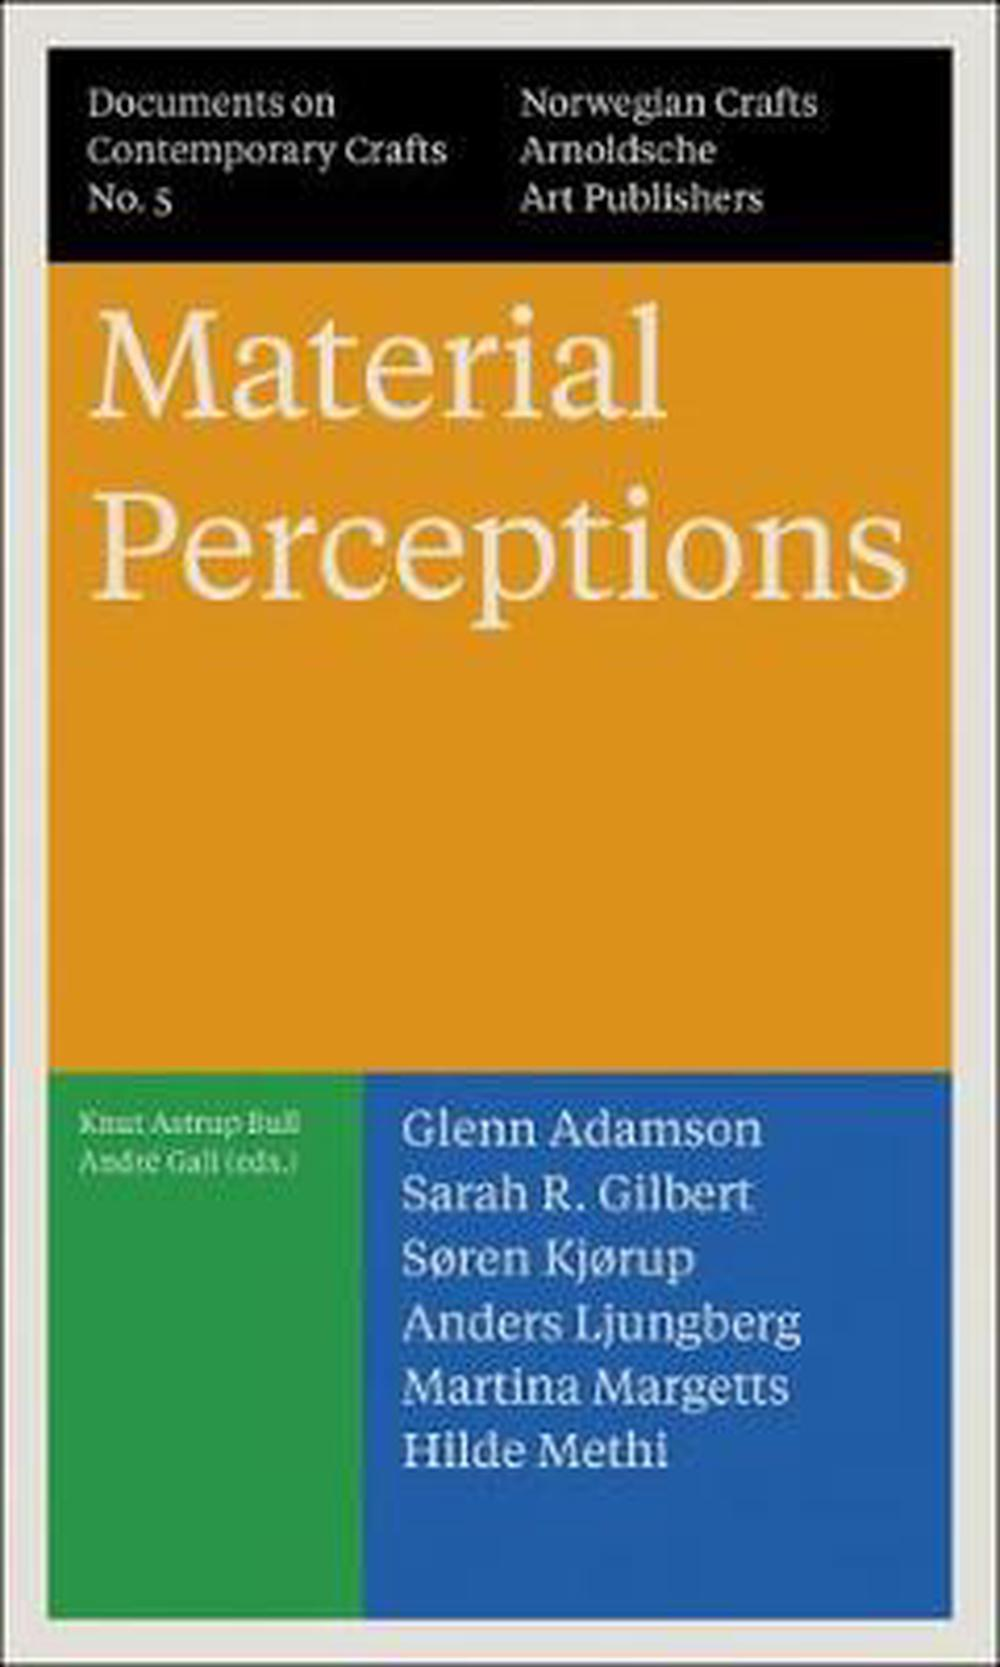 Material Perceptions: Documents on Contemporary Crafts No. 5 by Søren Kjørup, ISBN: 9783897905214